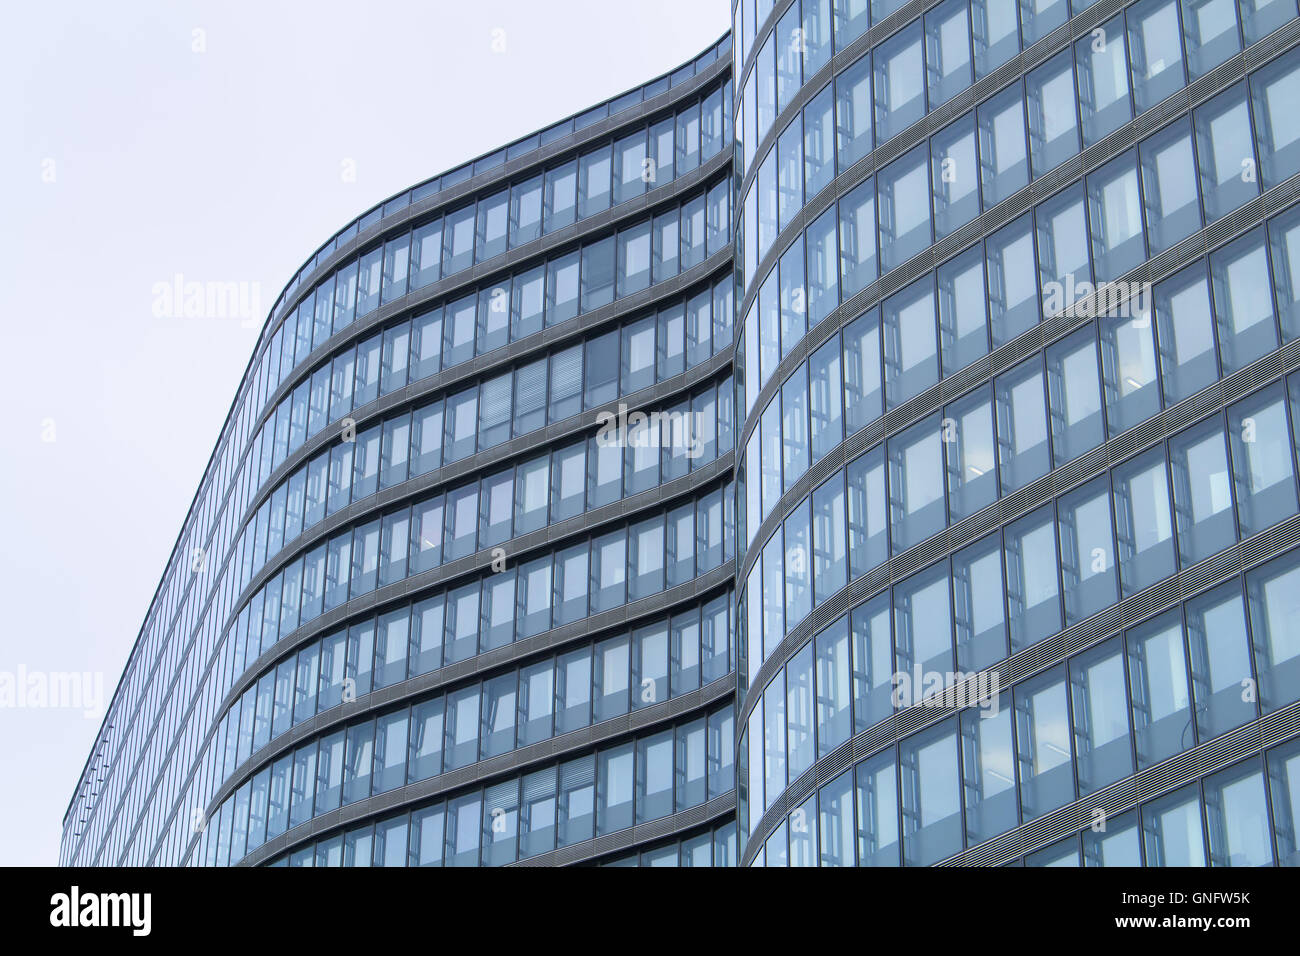 Detail of the modern architecture, with its curves and lines. Blue and grey tones. - Stock Image